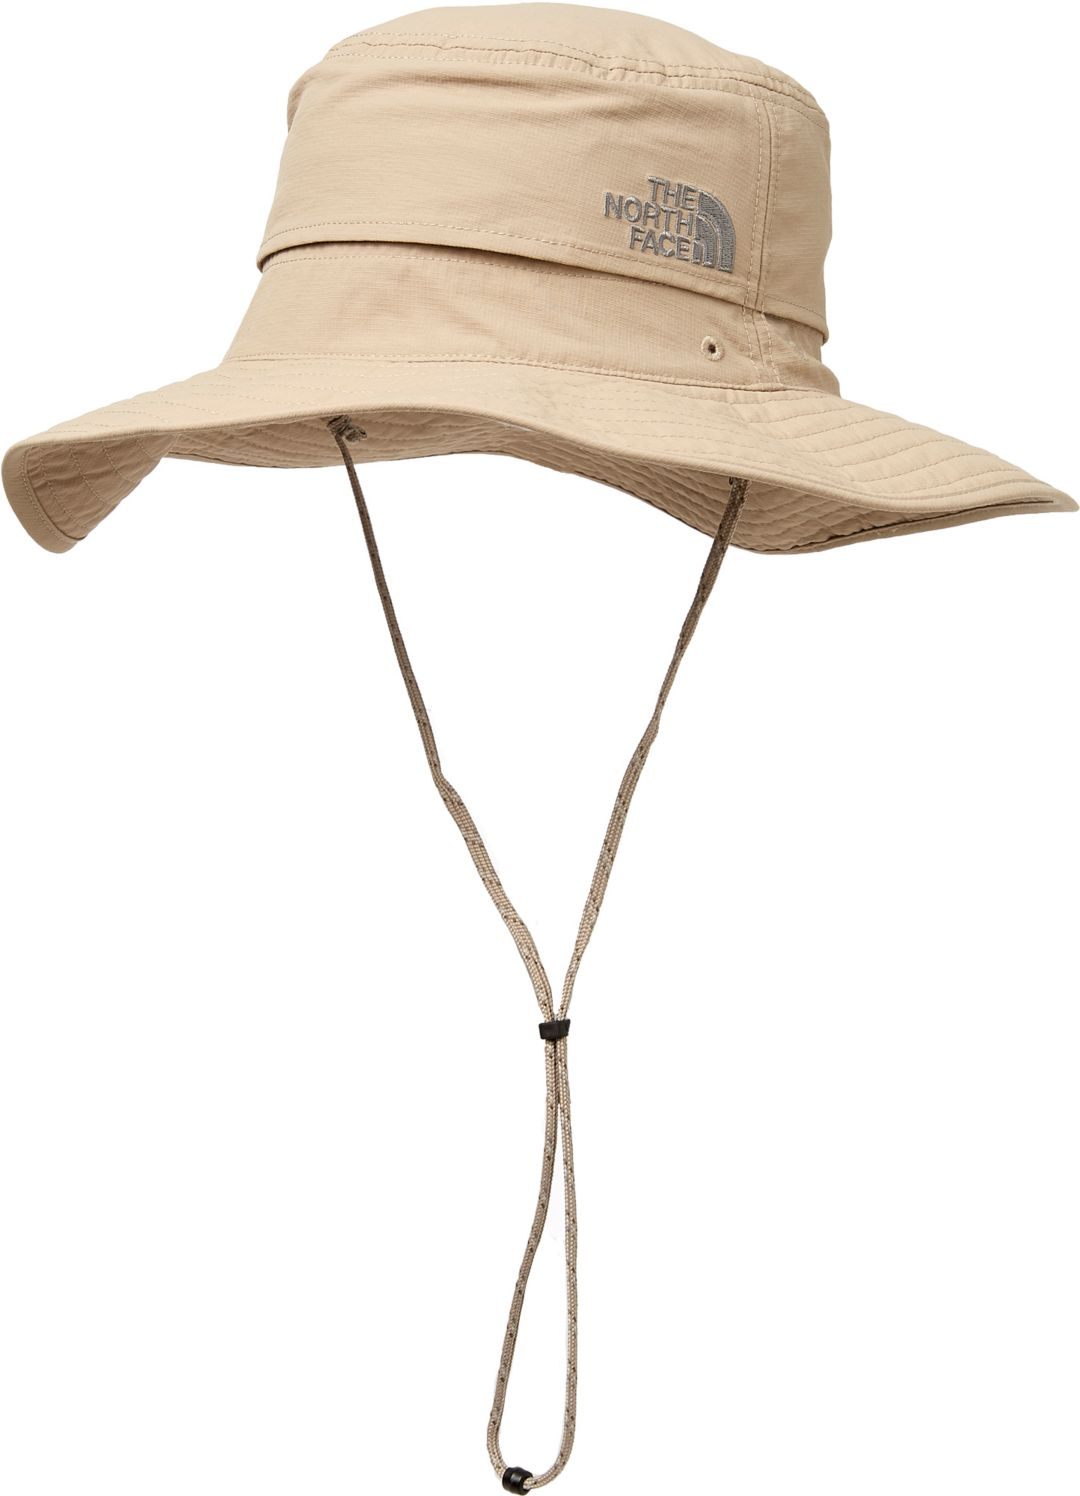 d9aadadc0 The North Face Men's Horizon Breeze Brimmer Hat